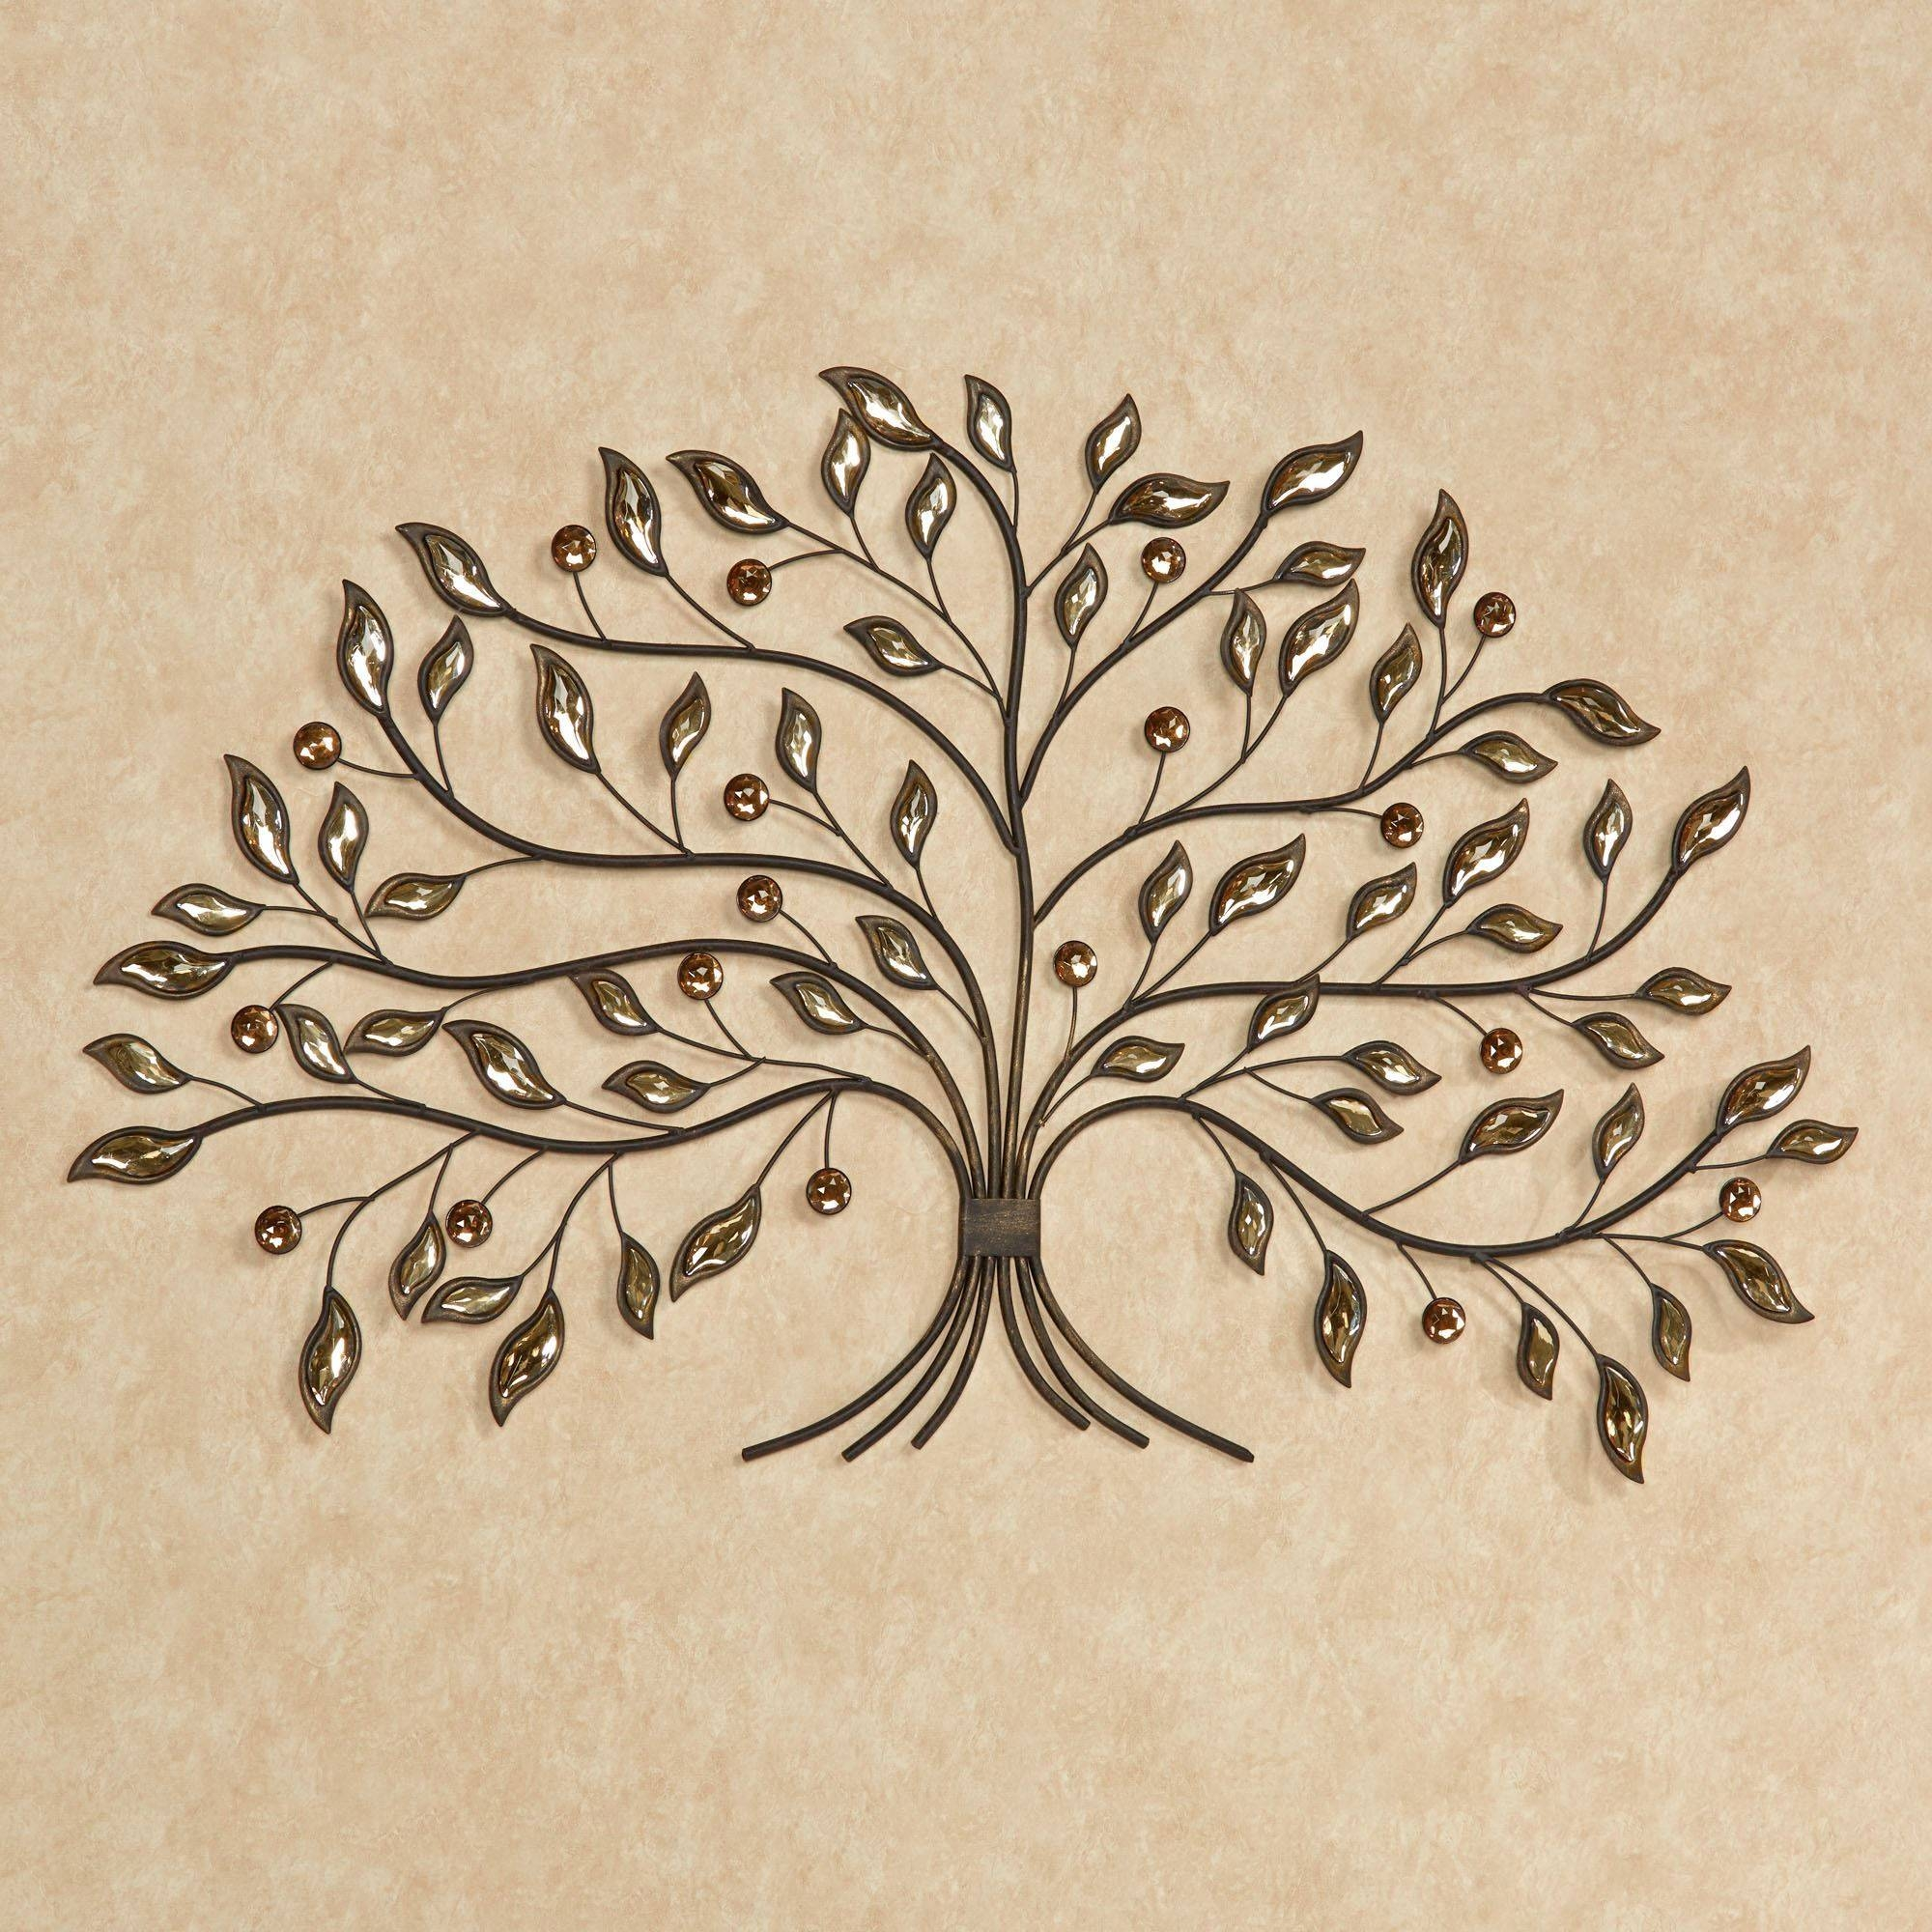 Alexandra Vining Gem Tree Metal Wall Art Within Most Recently Released Metal Wall Art Trees And Leaves (View 12 of 20)